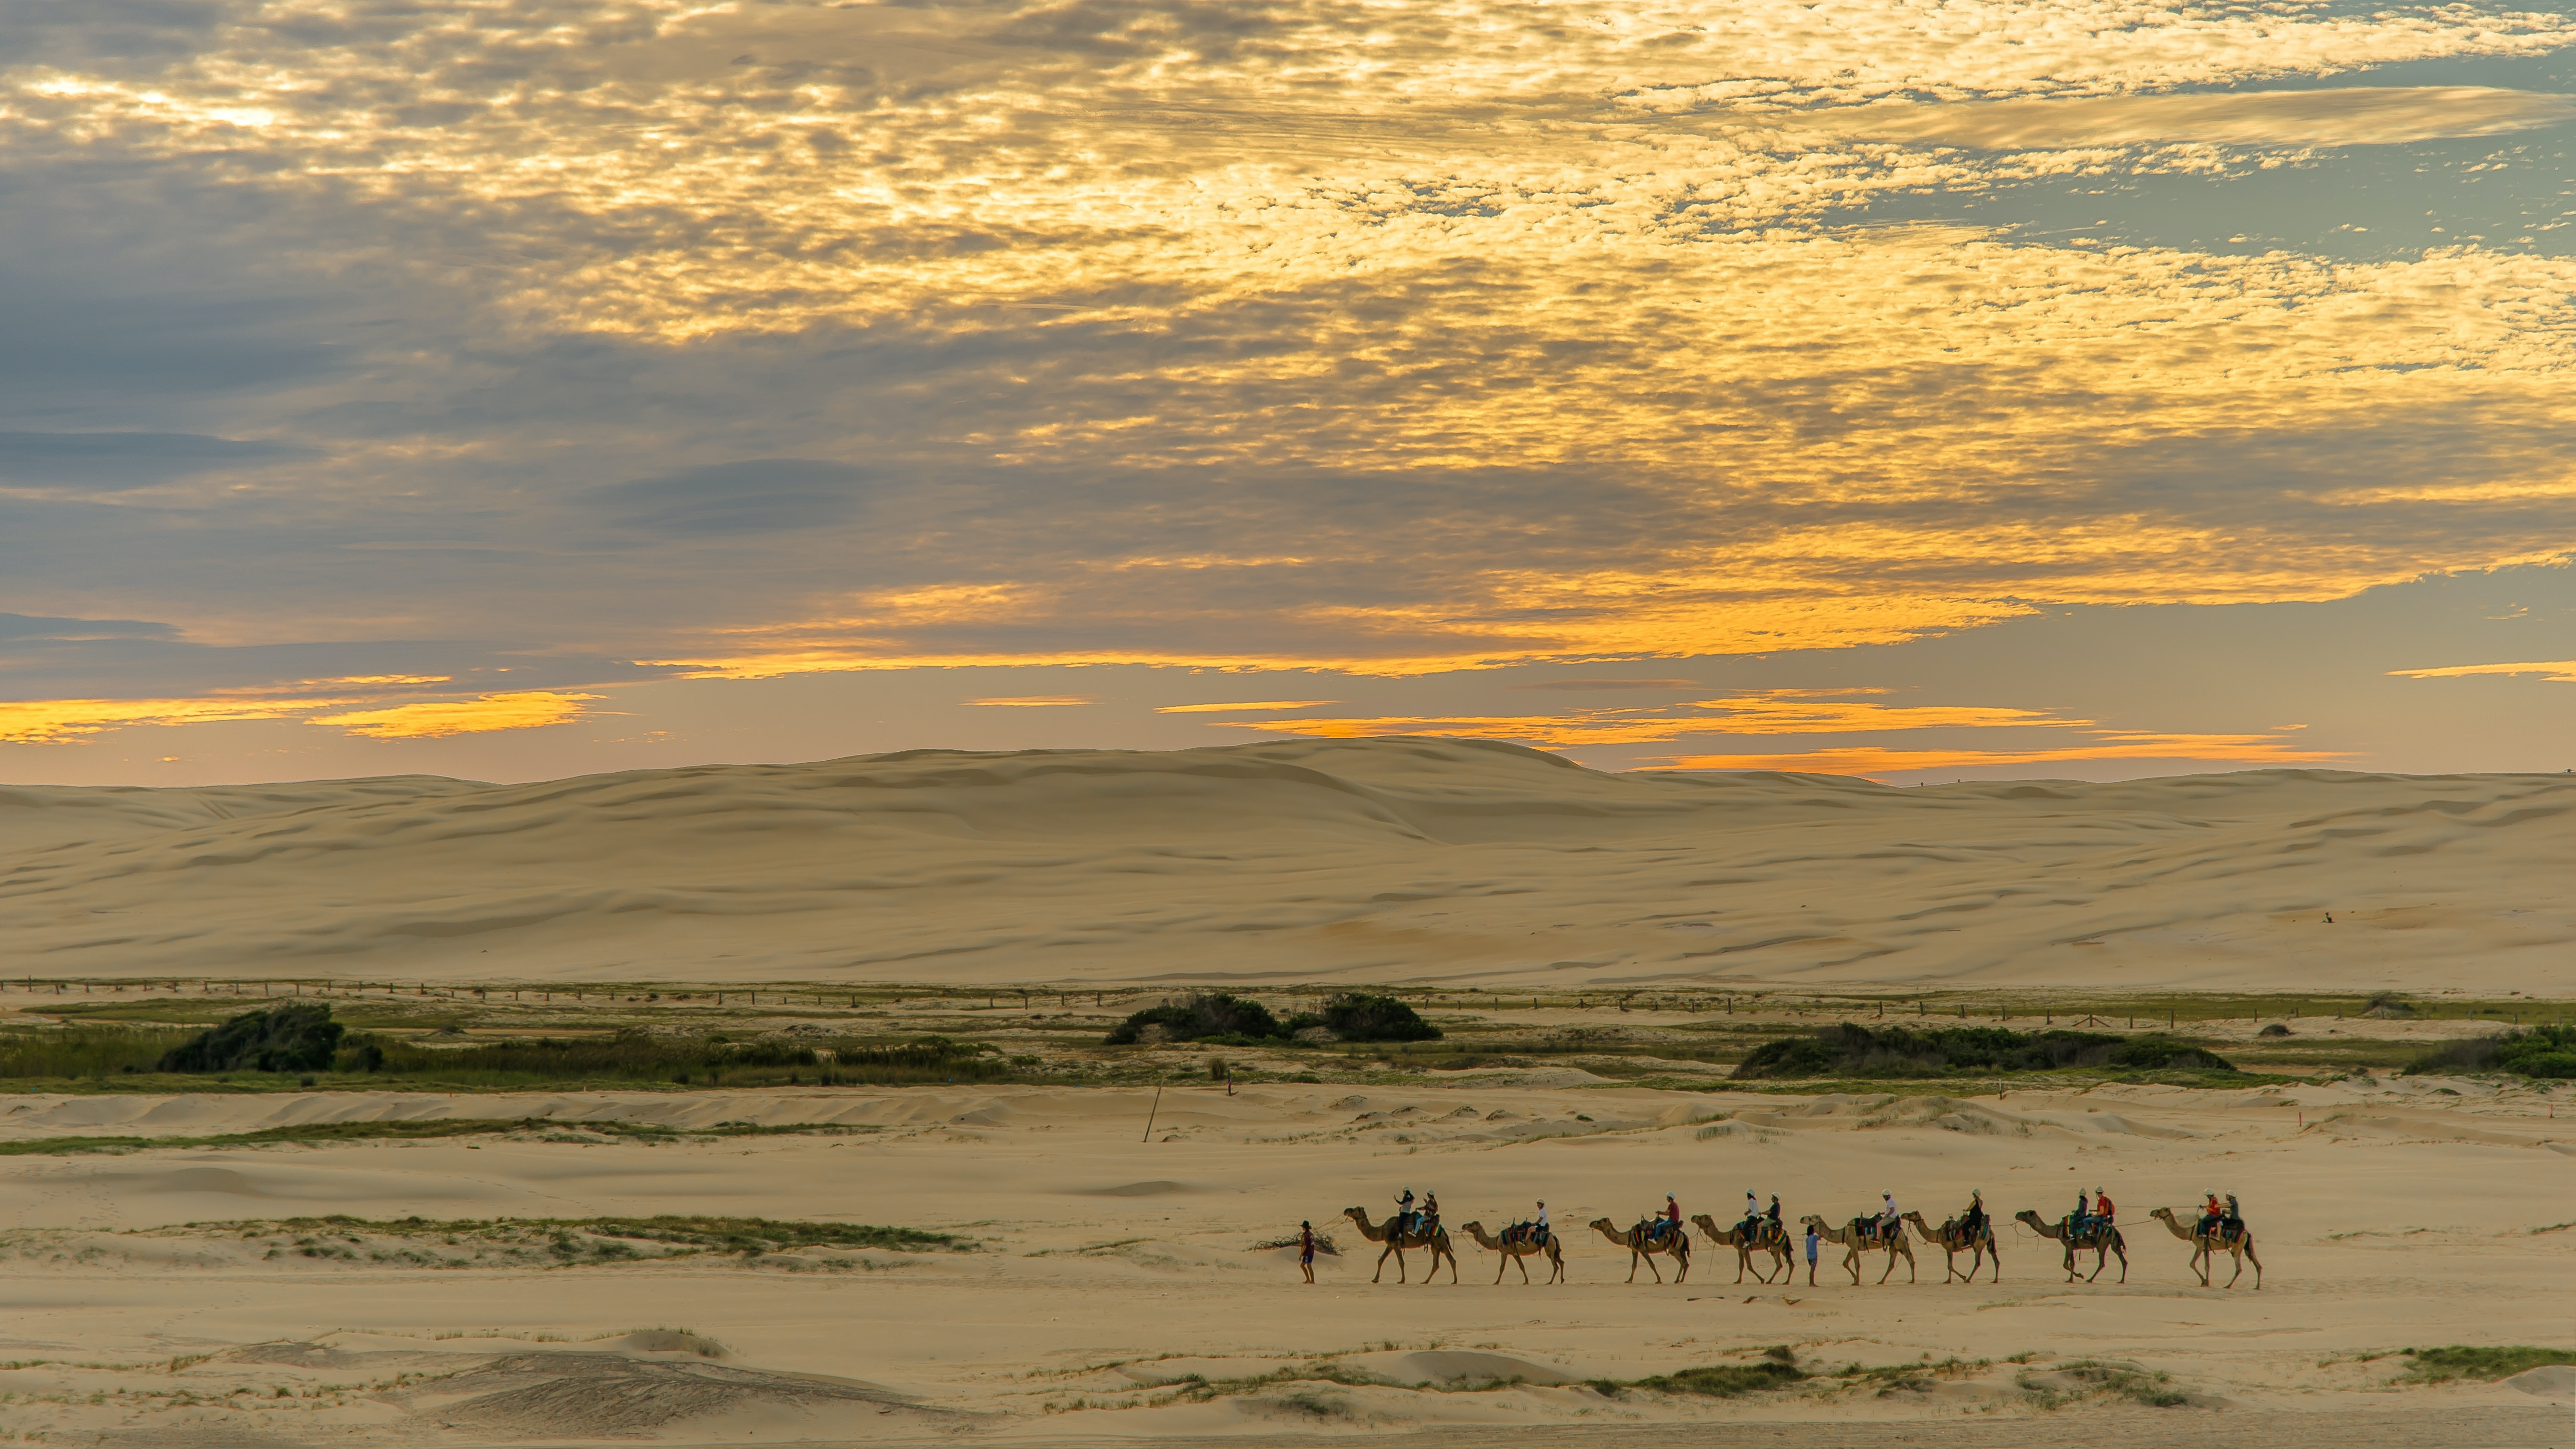 people riding on camel walking on ground at during golden hour